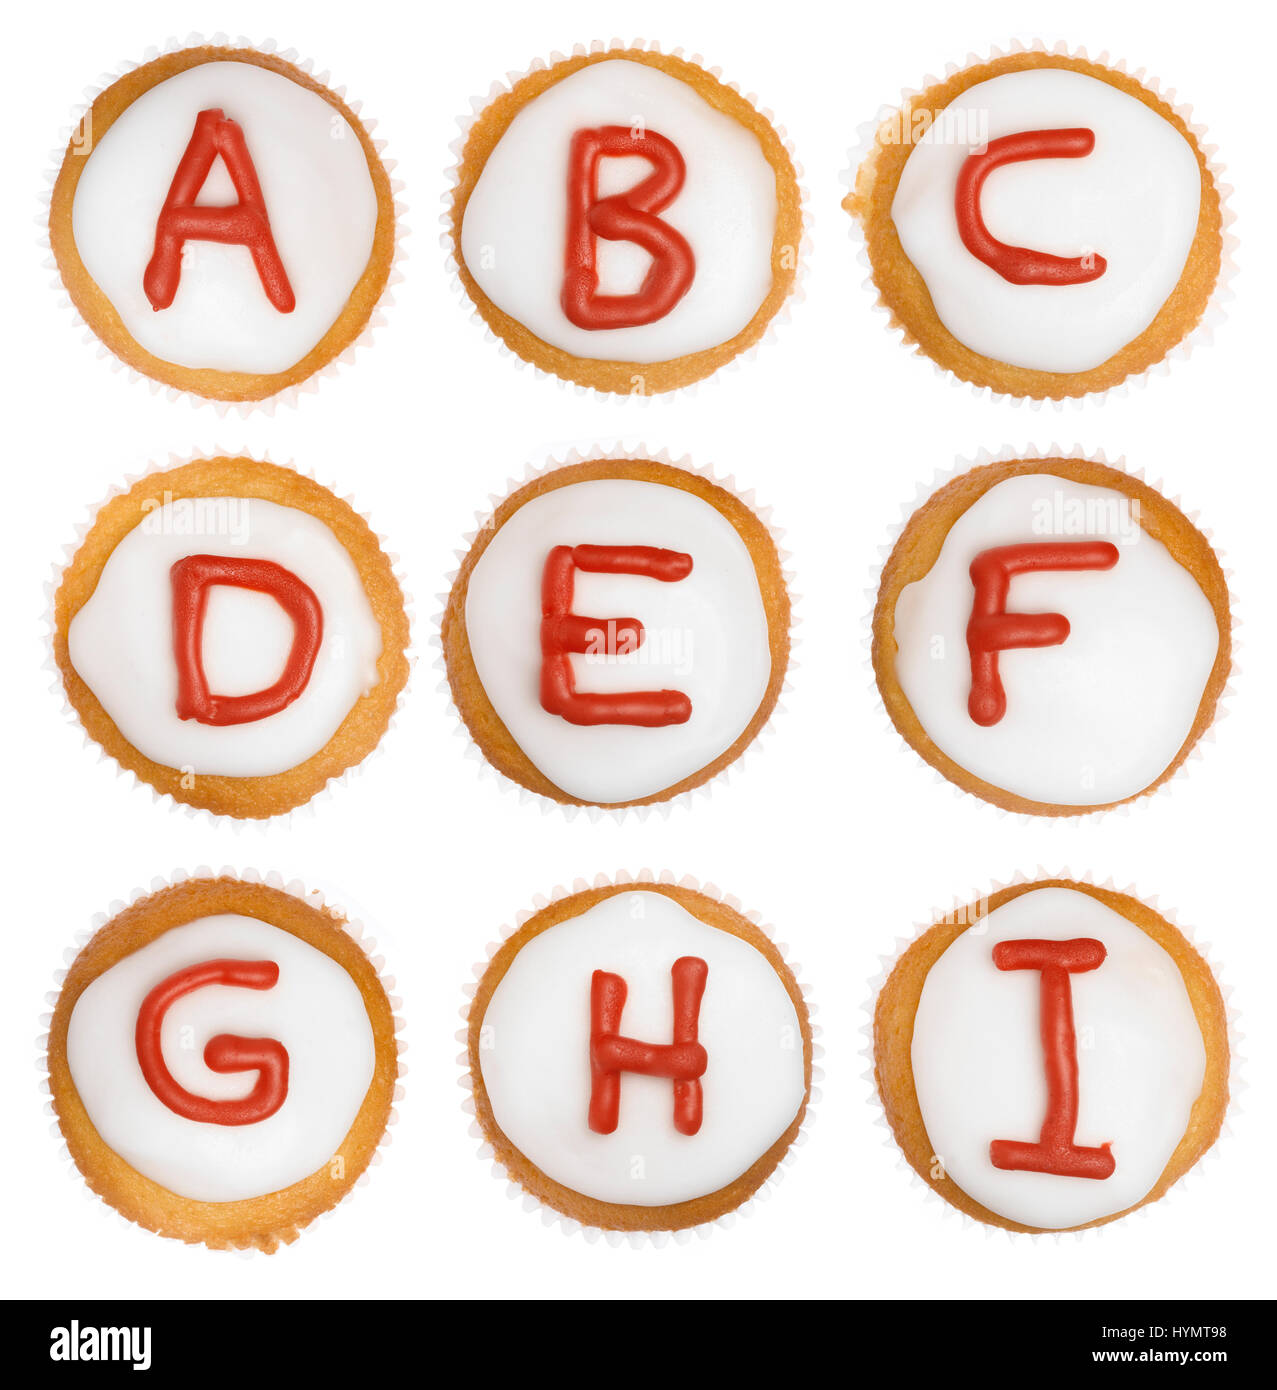 Isolated Cupcake Alphabet from A to I Stock Photo